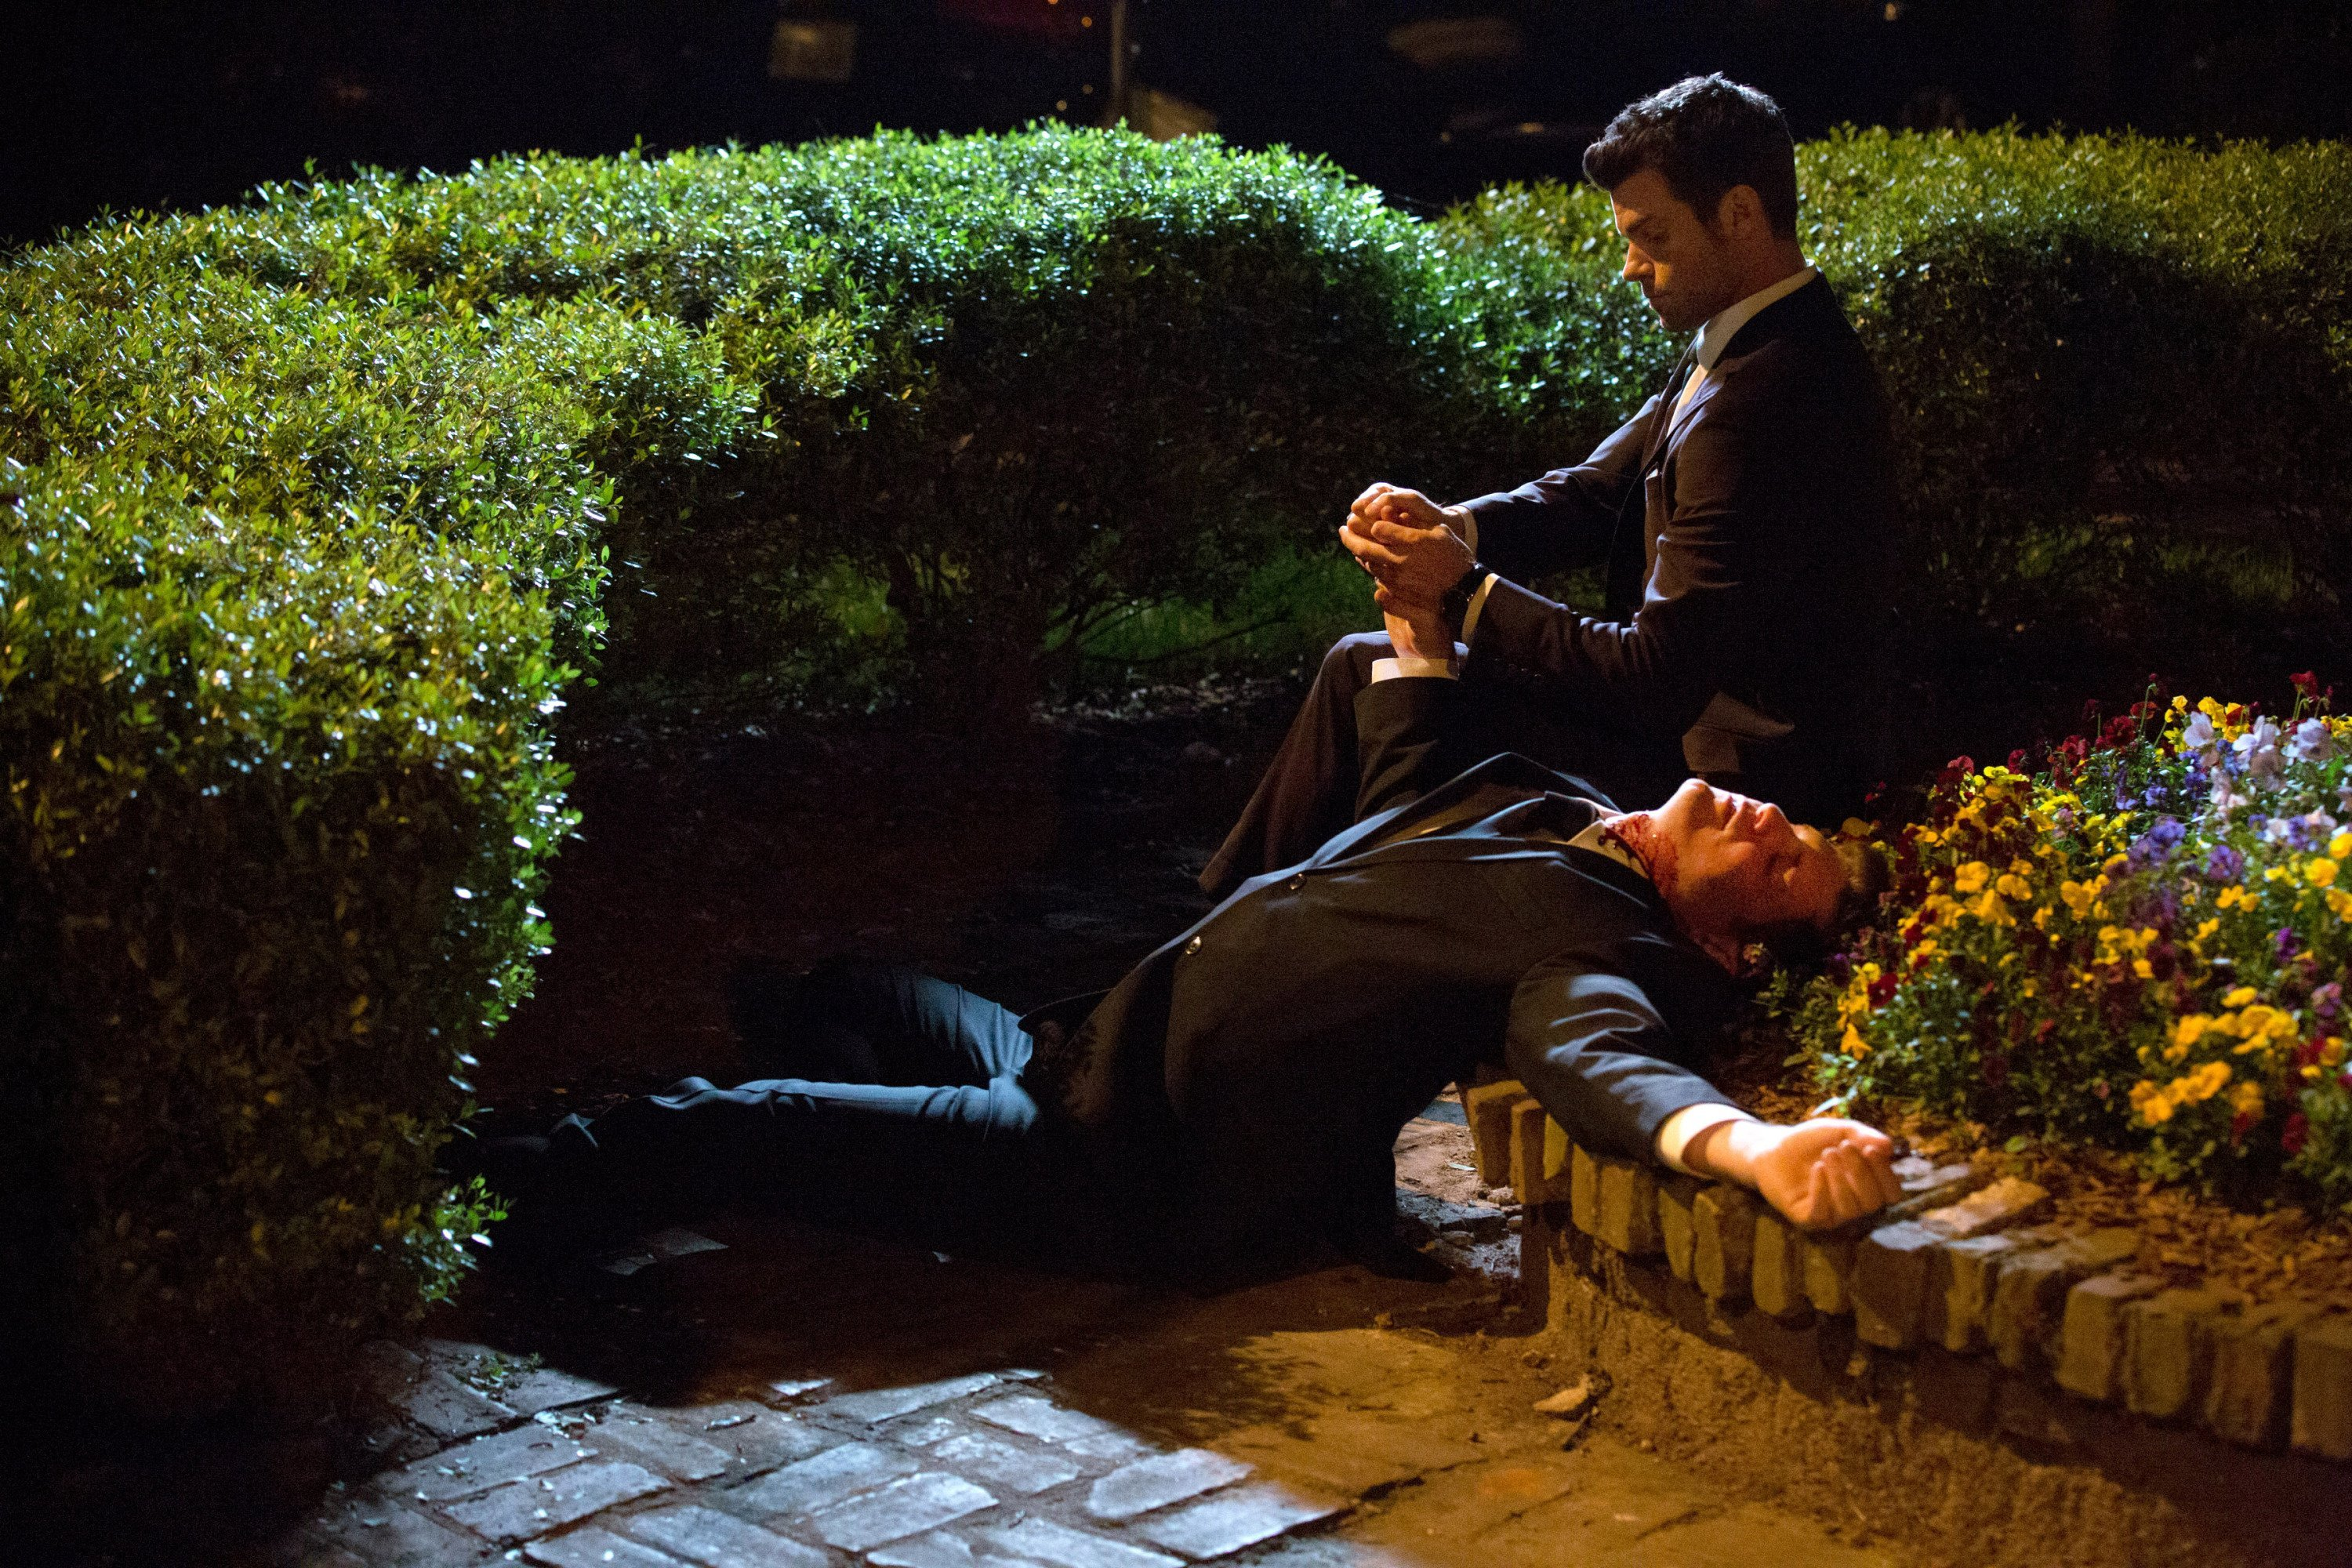 File:The Originals - Episode 2.01 - Rebirth(g).jpg